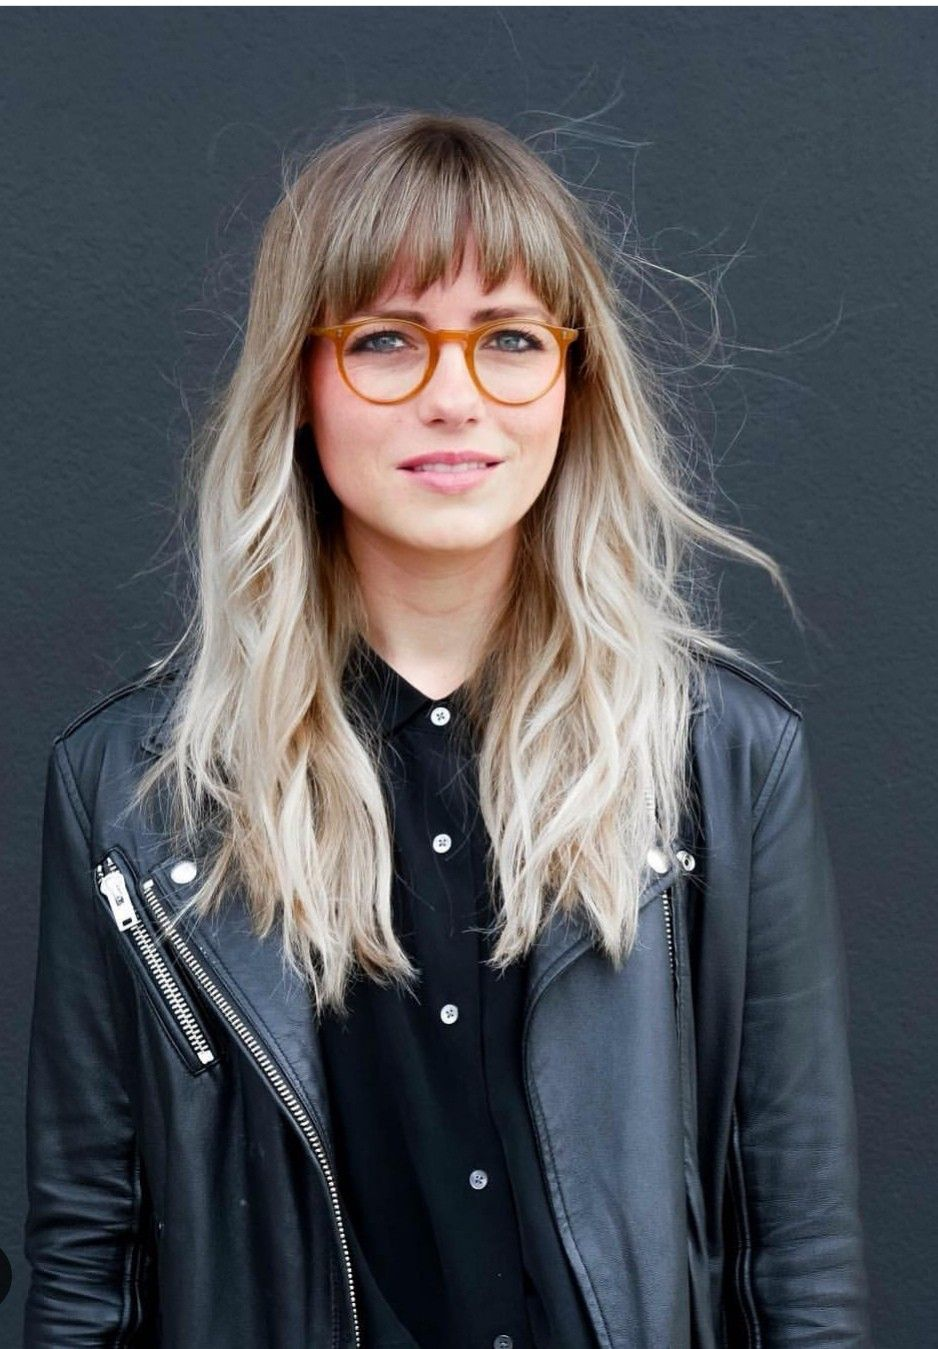 Pin By Nikellys On Hair Long Hair Styles Hair Styles Hairstyles With Glasses